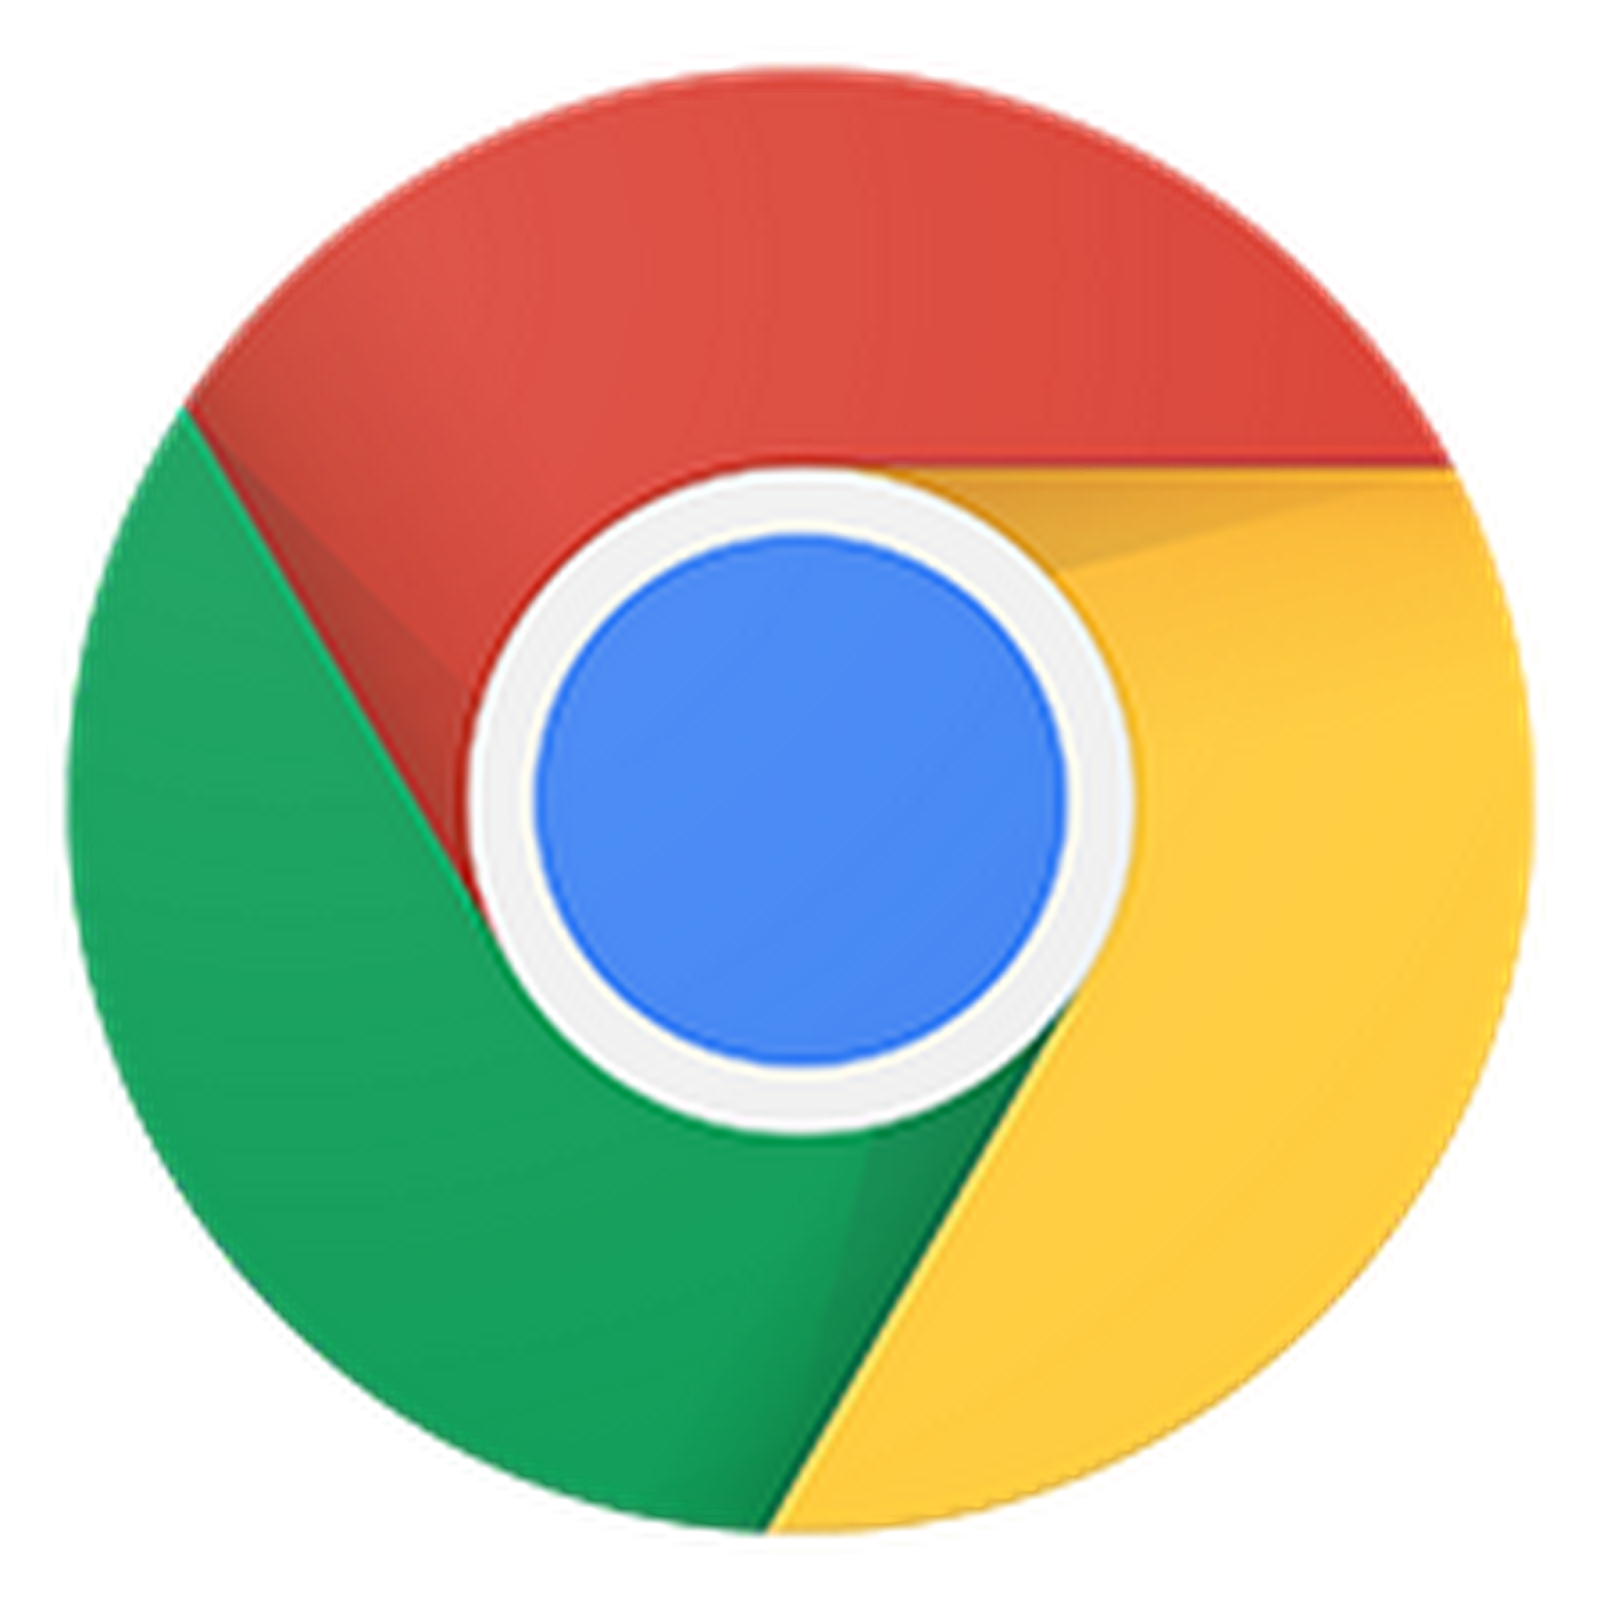 google s rapid and continuous development cycle ensures chrome for mac continues to close in on safari s dominant position in the mac browser market